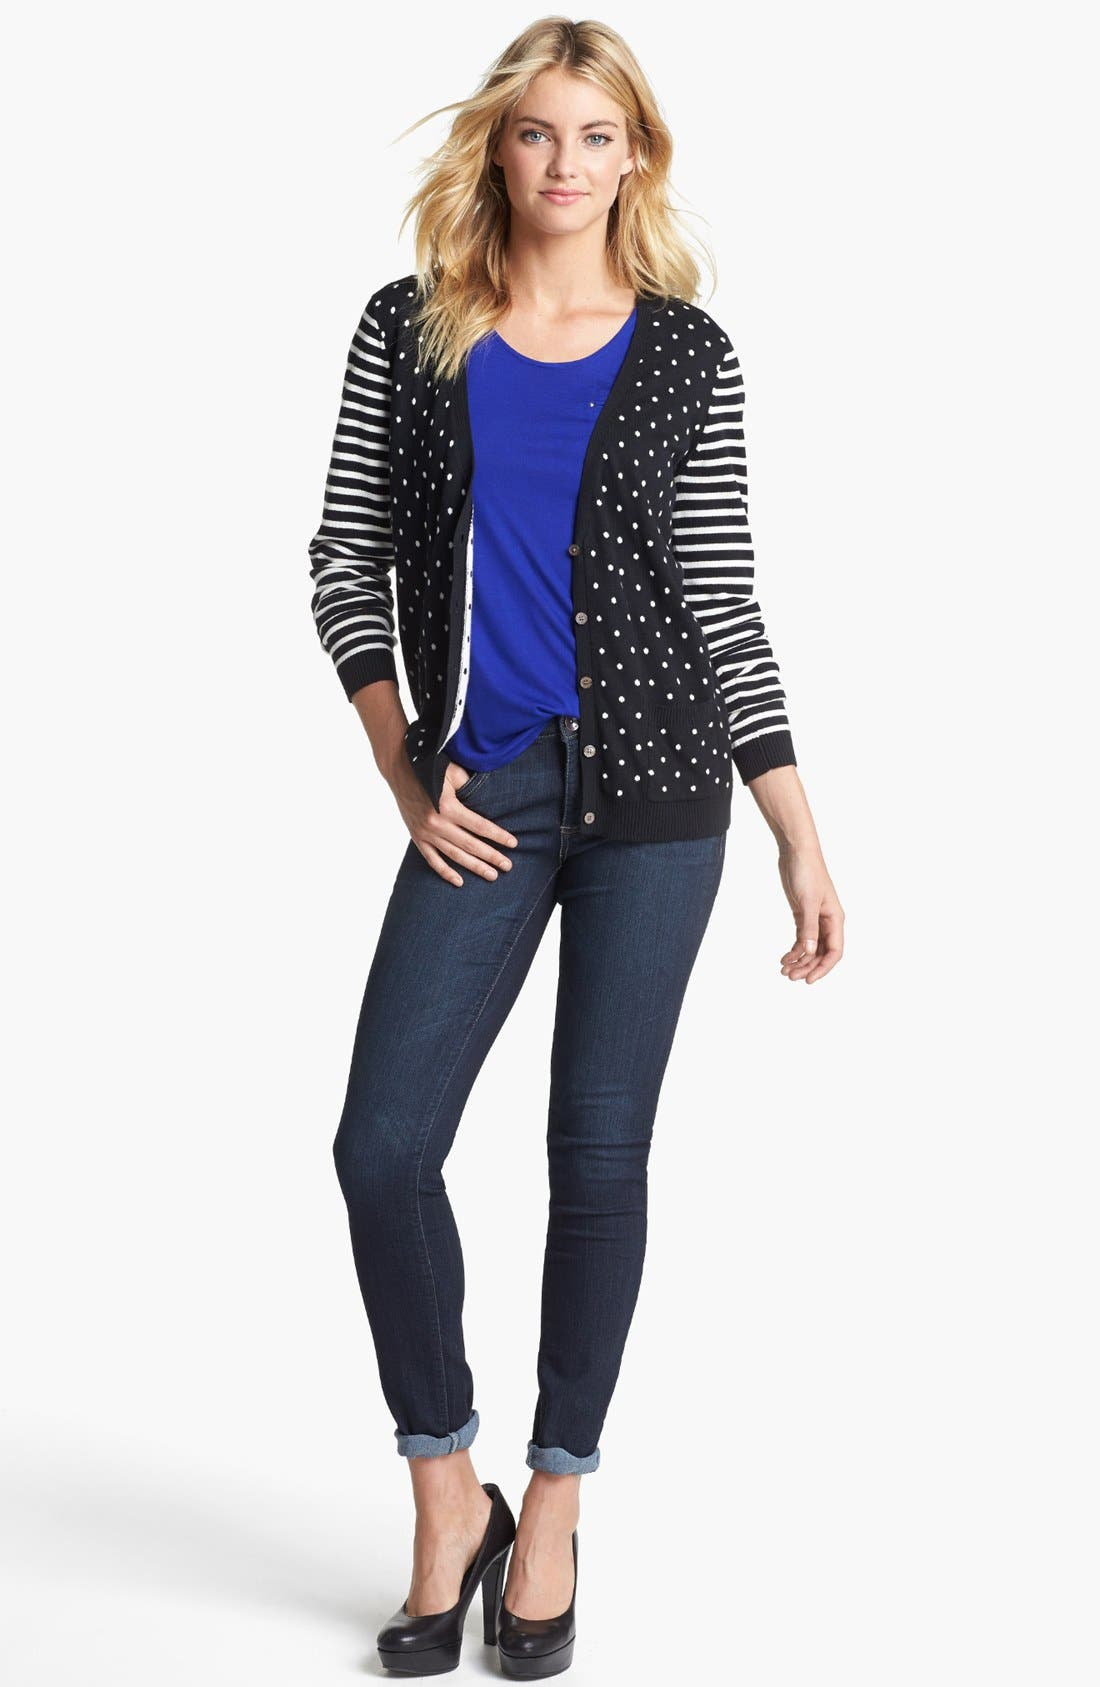 Main Image - Two by Vince Camuto Dot & Stripe Cardigan